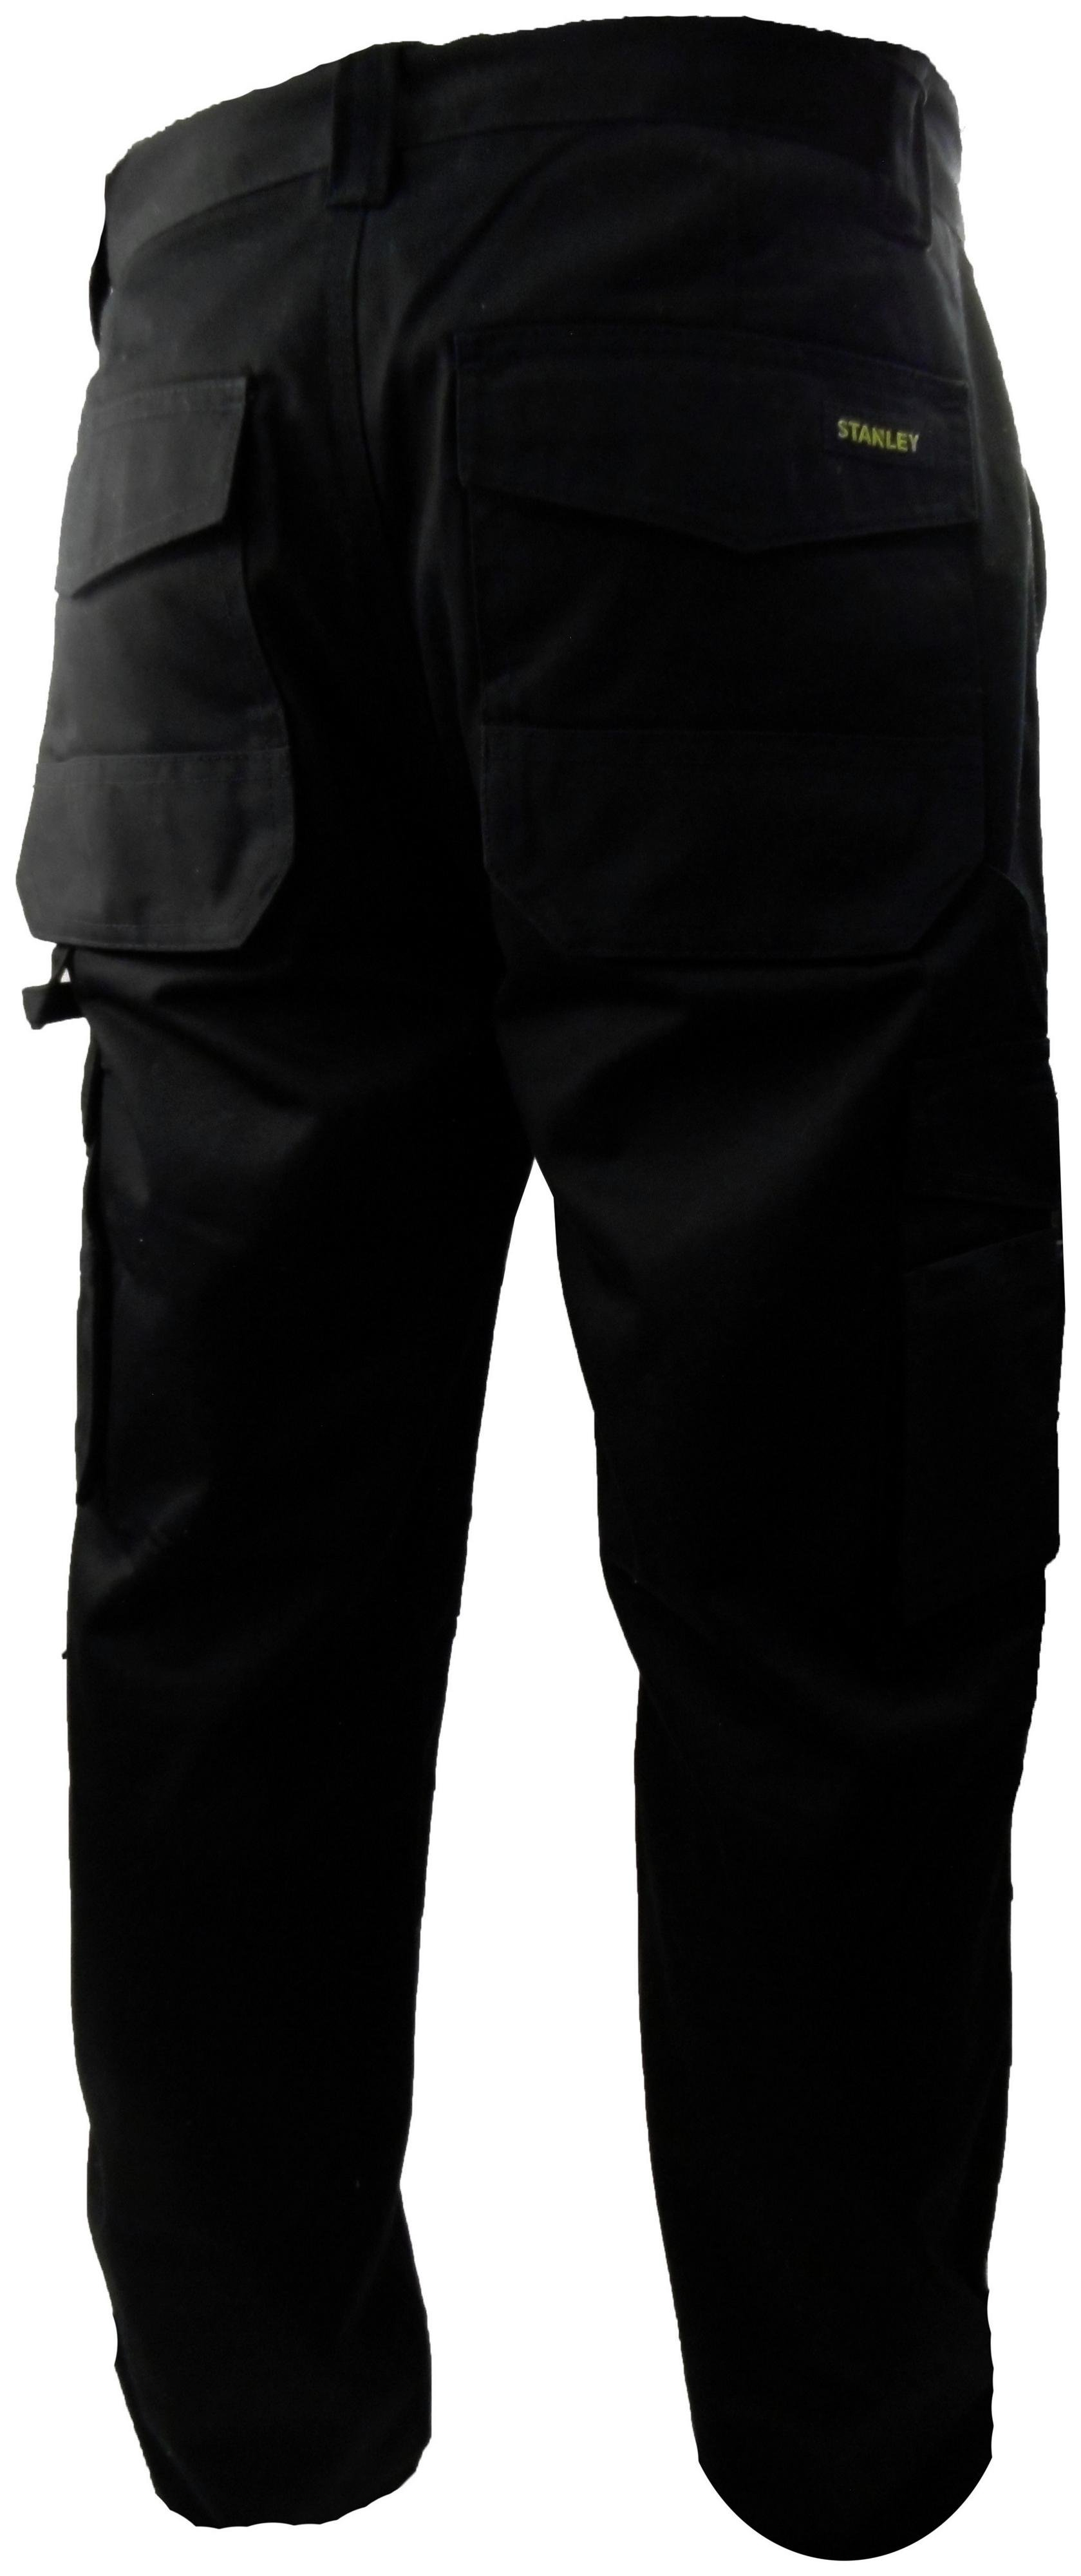 Image of Stanley - Phoenix - Mens - Black Trouser - 31 to 40 inch